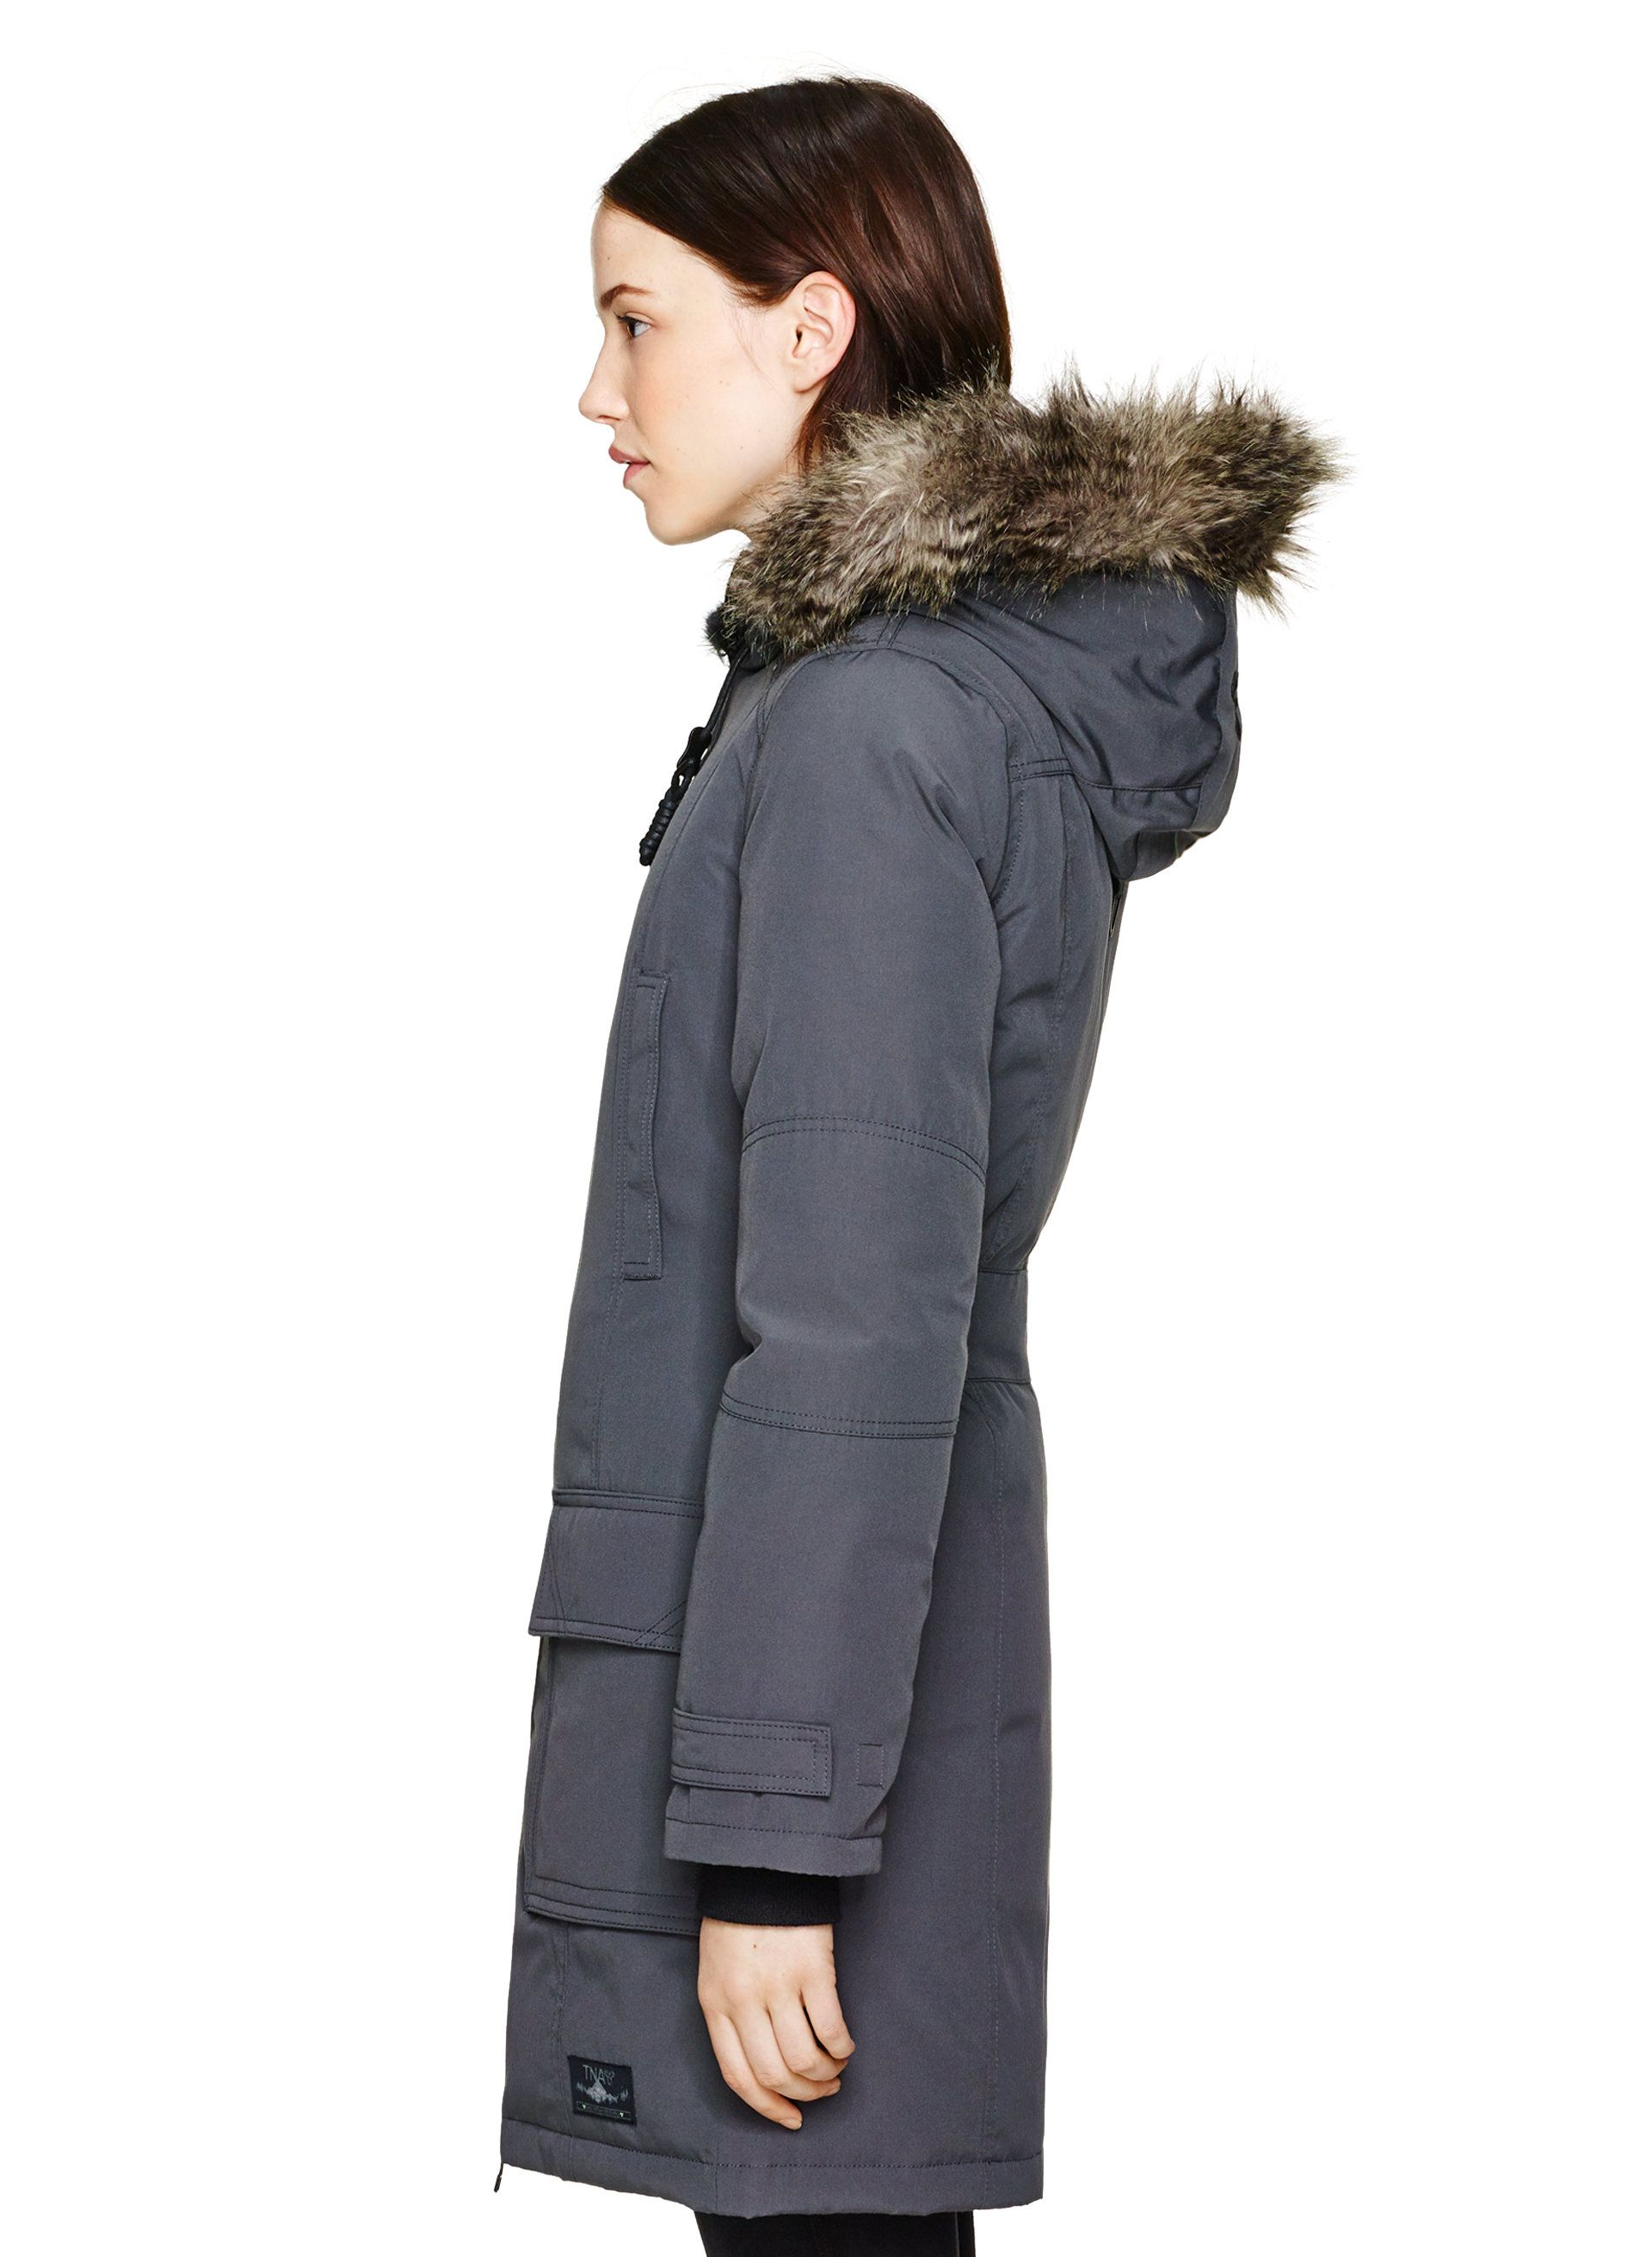 Bancroft parka | Parkas, Silhouettes and Cold weather